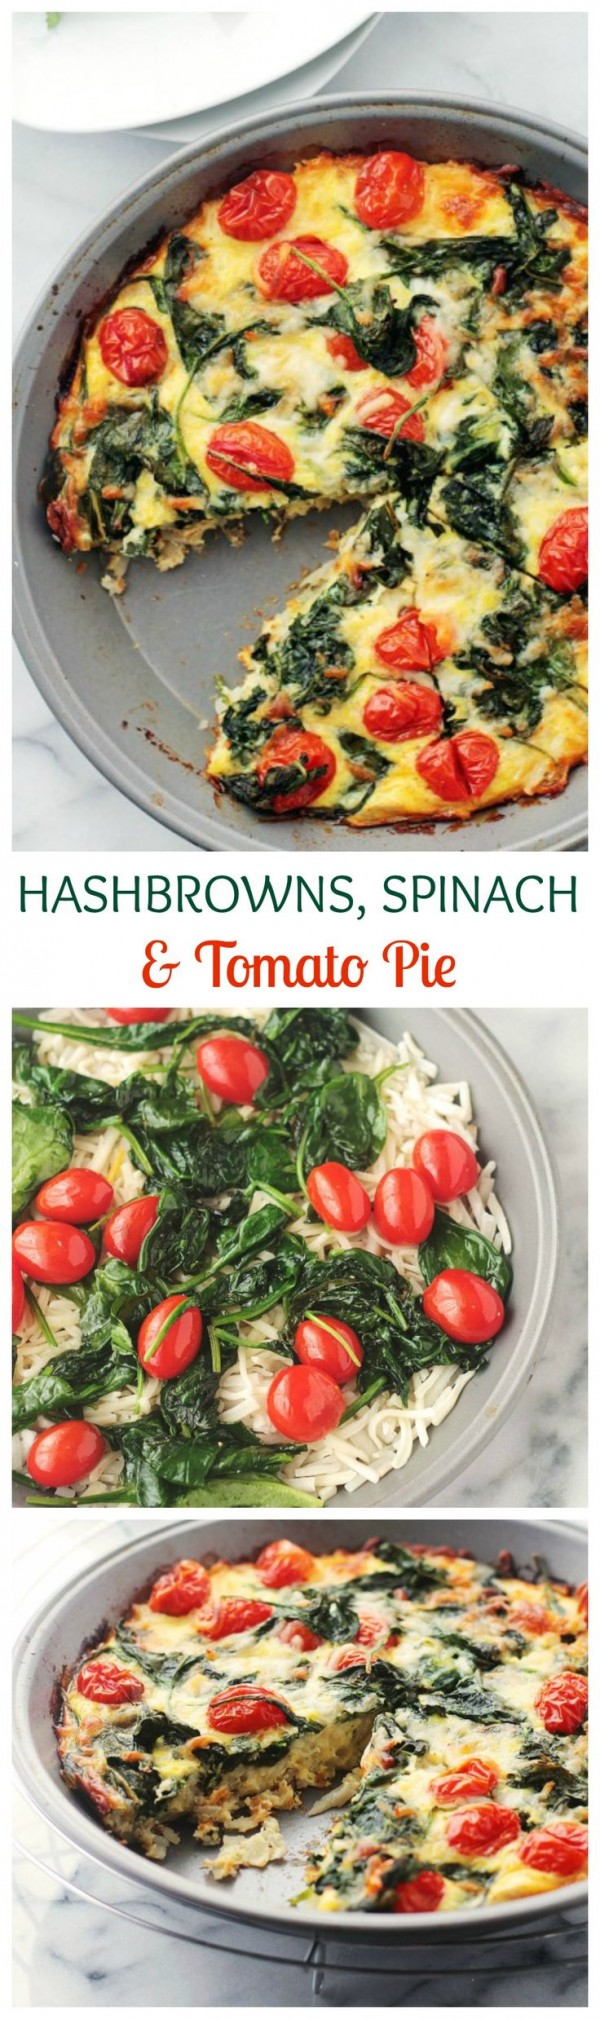 Get the recipe Hashbrowns Spinach and Tomato Pie @recipes_to_go